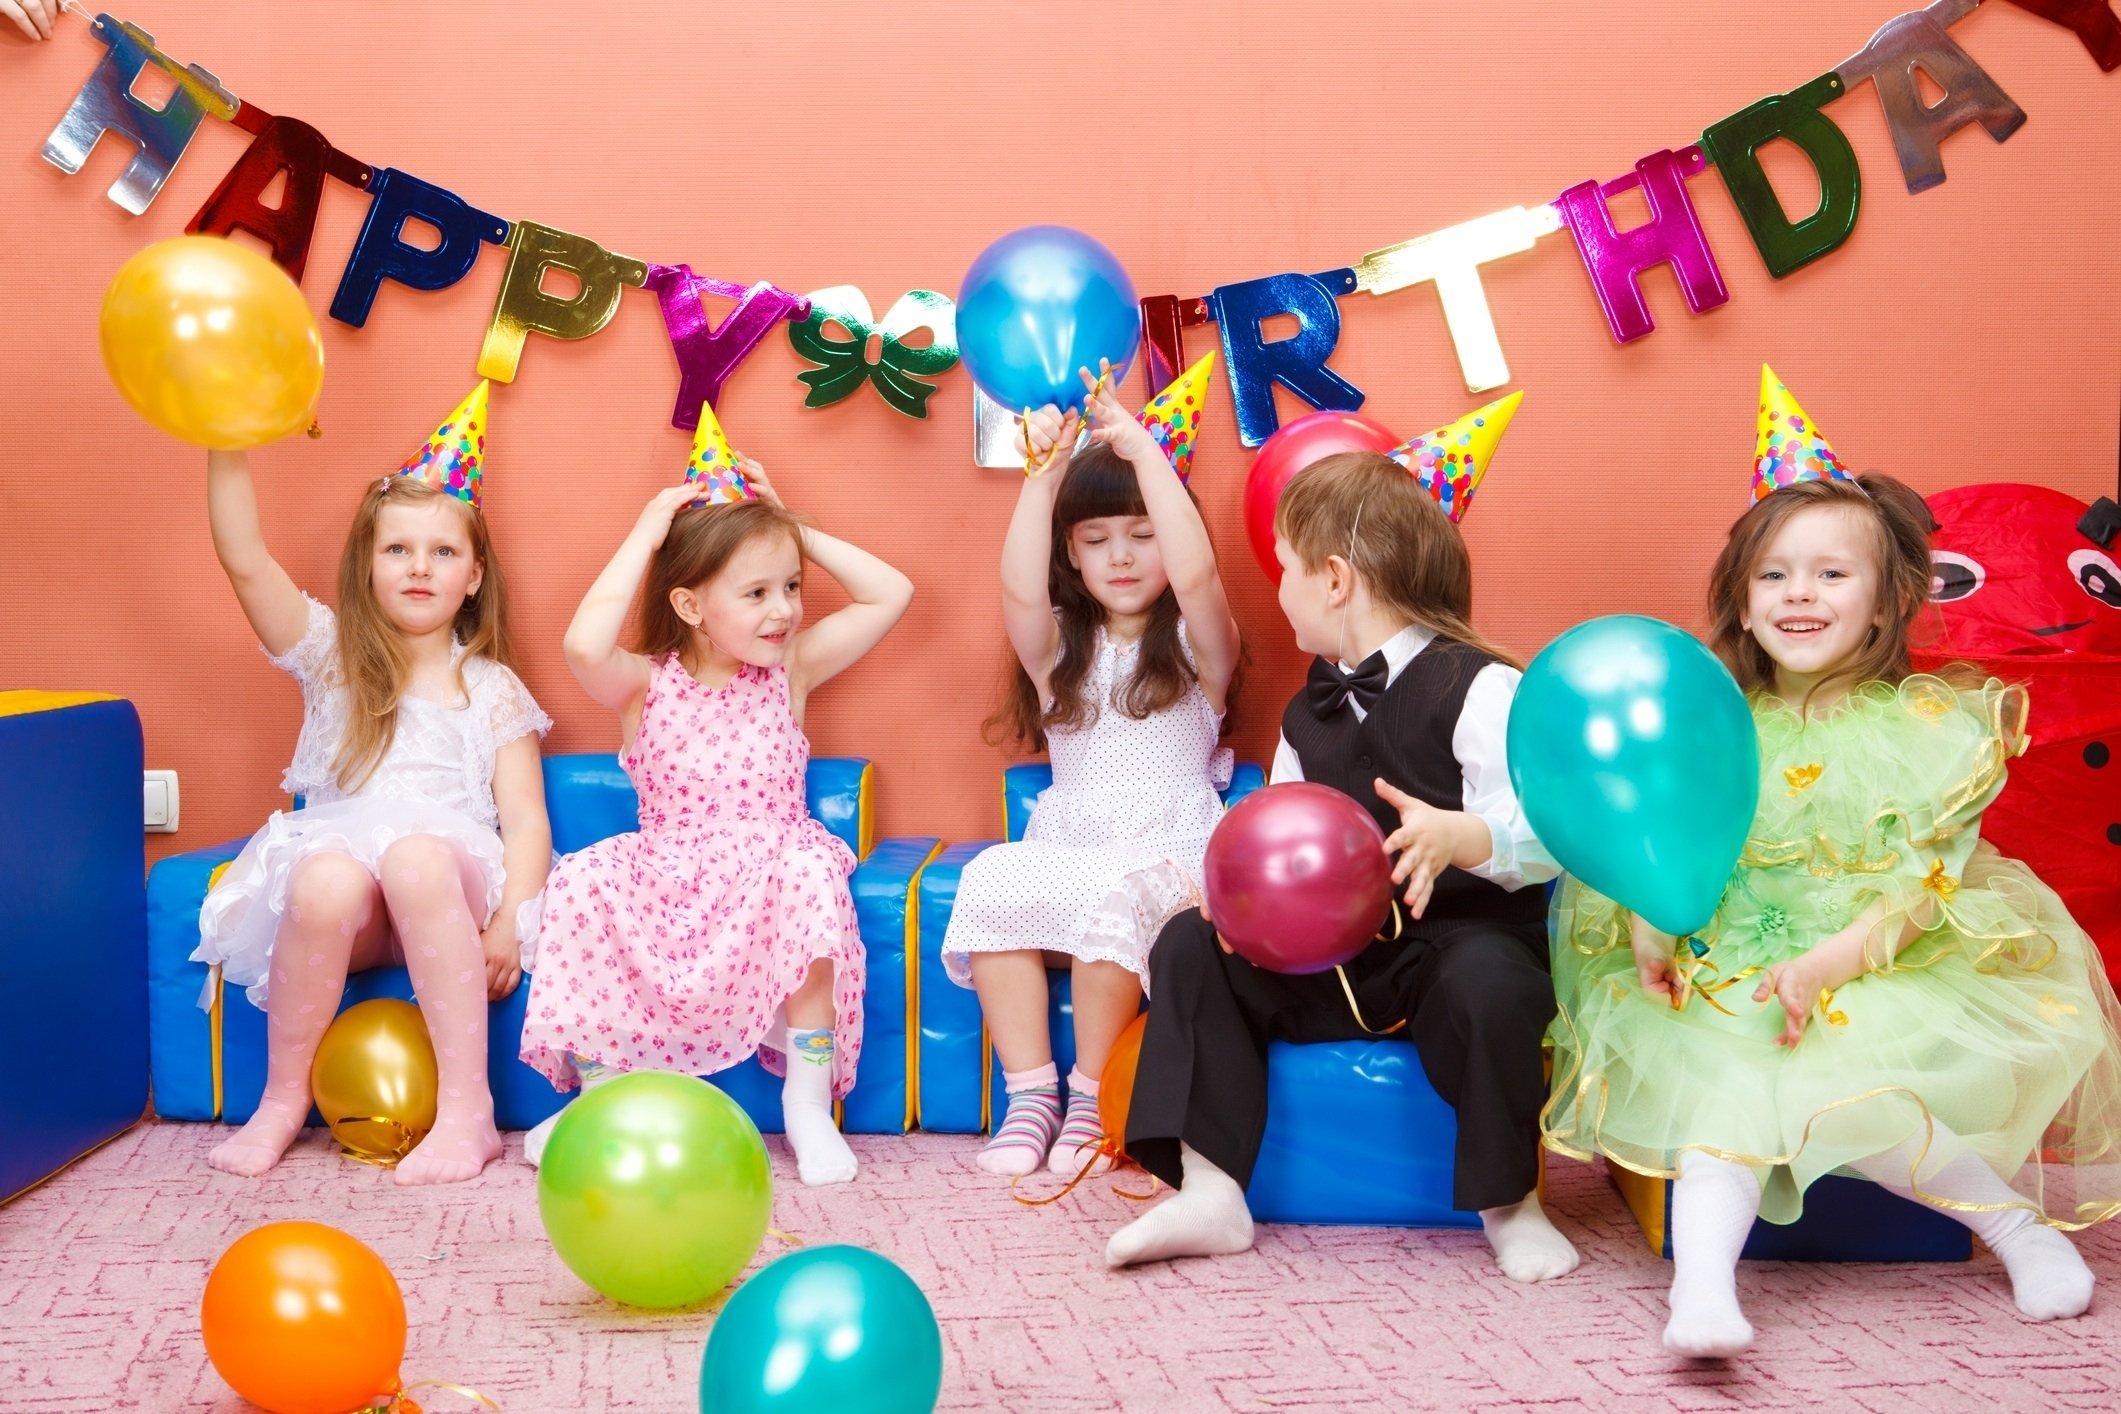 10 Stylish Birthday Party Ideas For Kids 45 awesome 11 12 year old birthday party ideas birthday inspire 16 2020